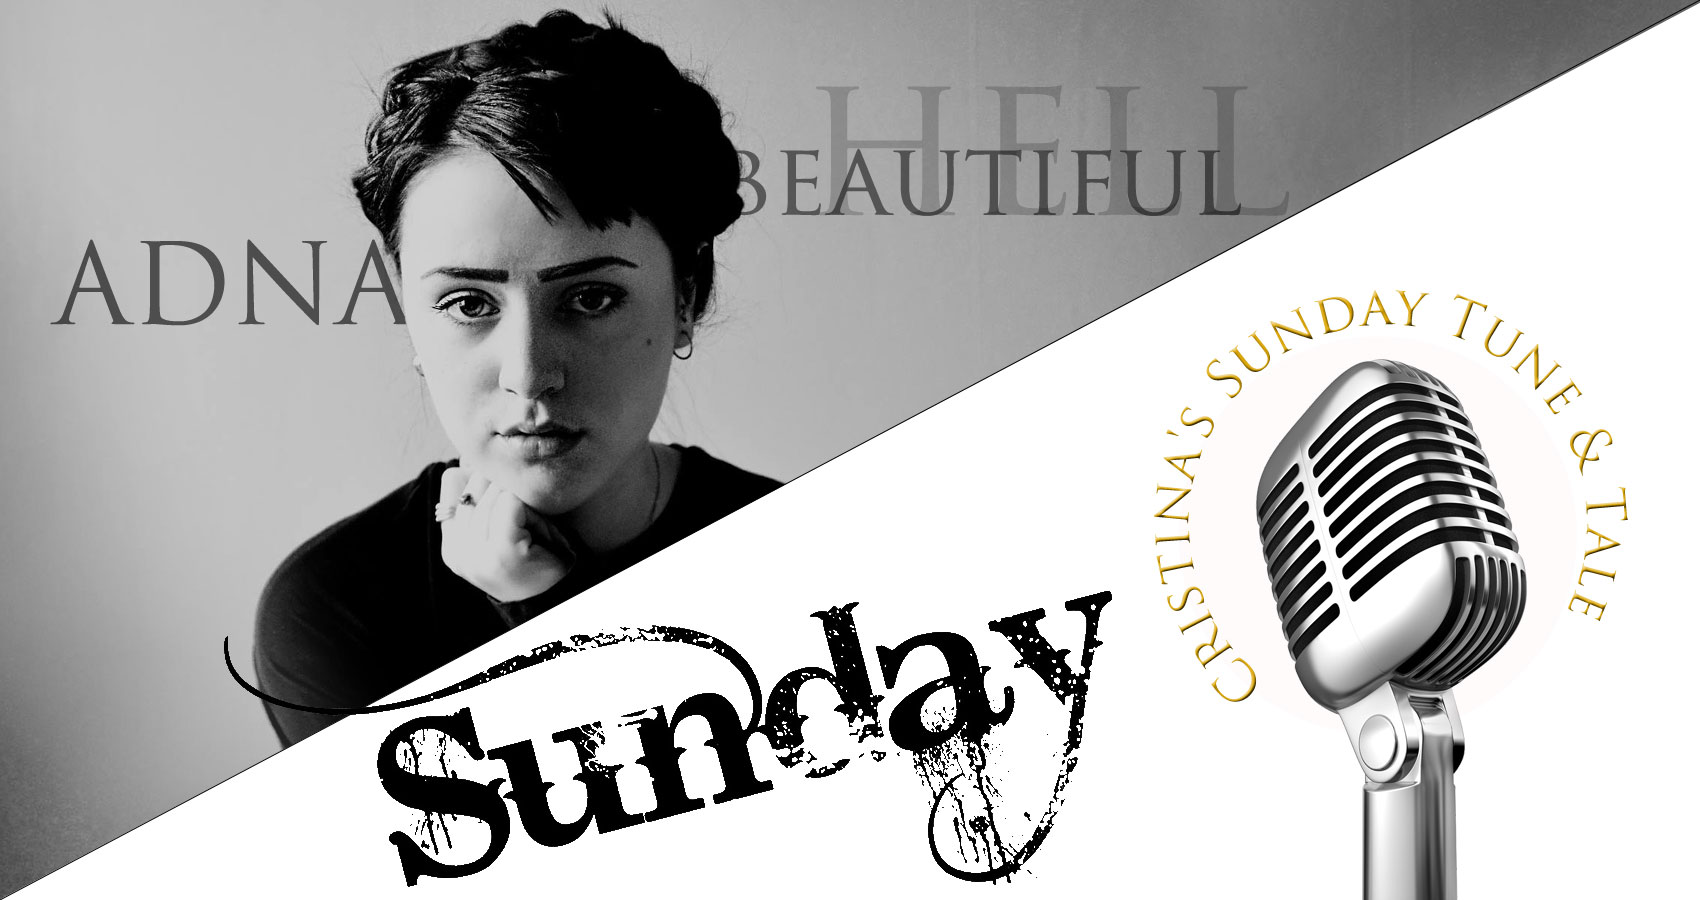 Cristina's Sunday Tune & Tale - Beautiful Hell By ADNA written by Cristina Munoz at Spillwords.com